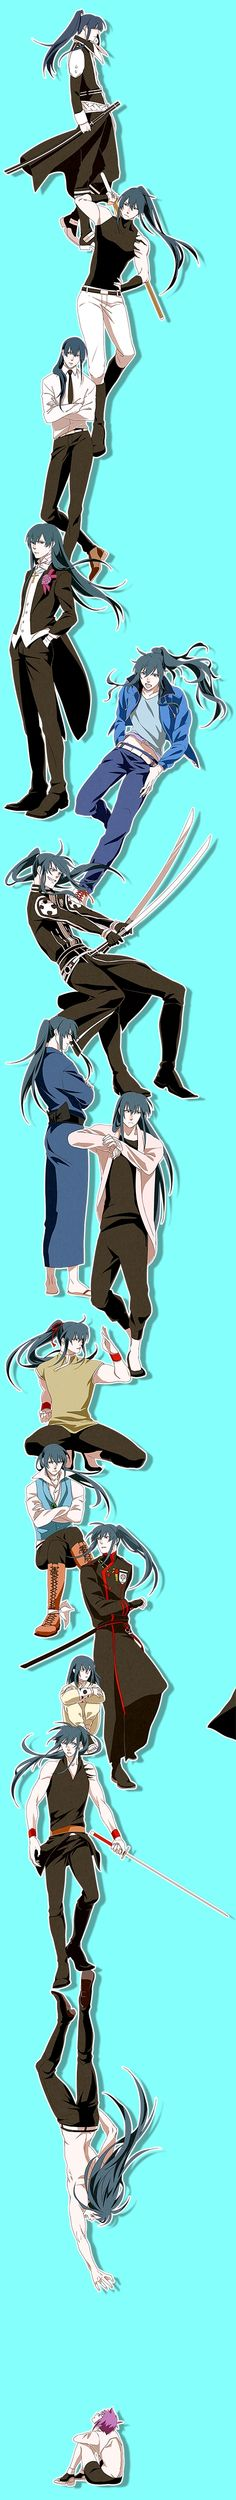 kanda and alma from dgm #anime